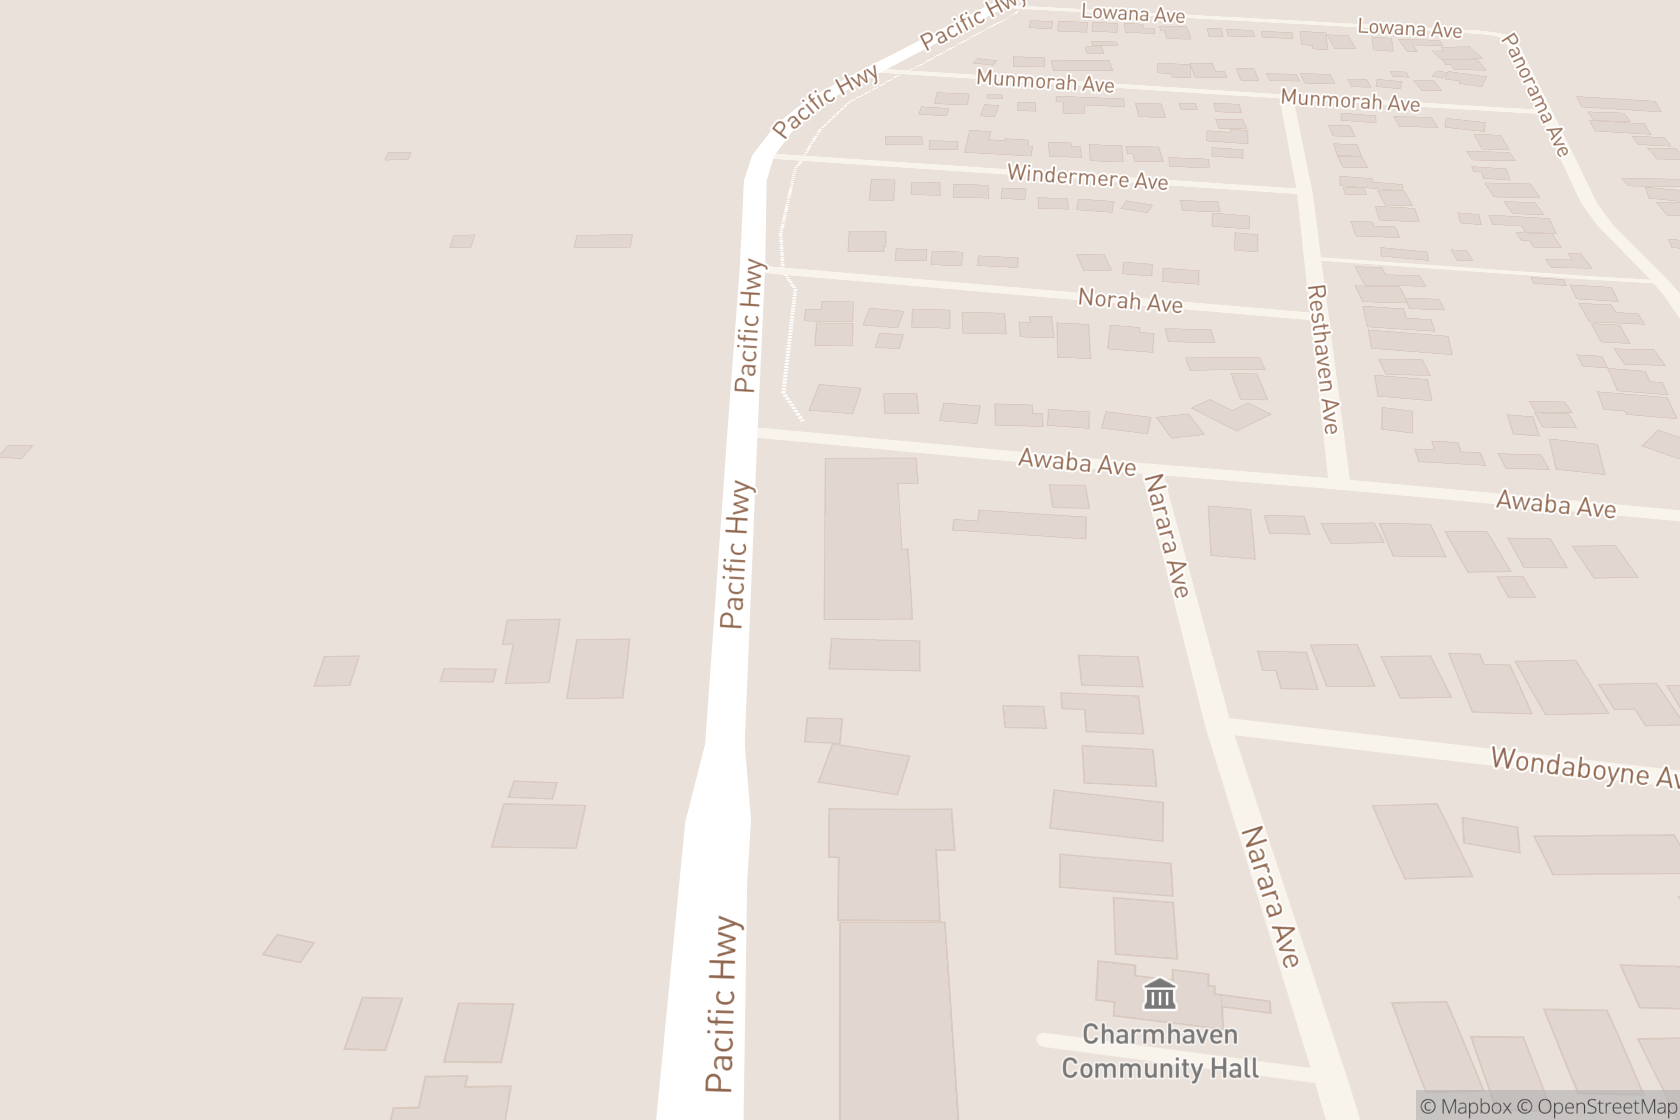 The Cut Off Point map location